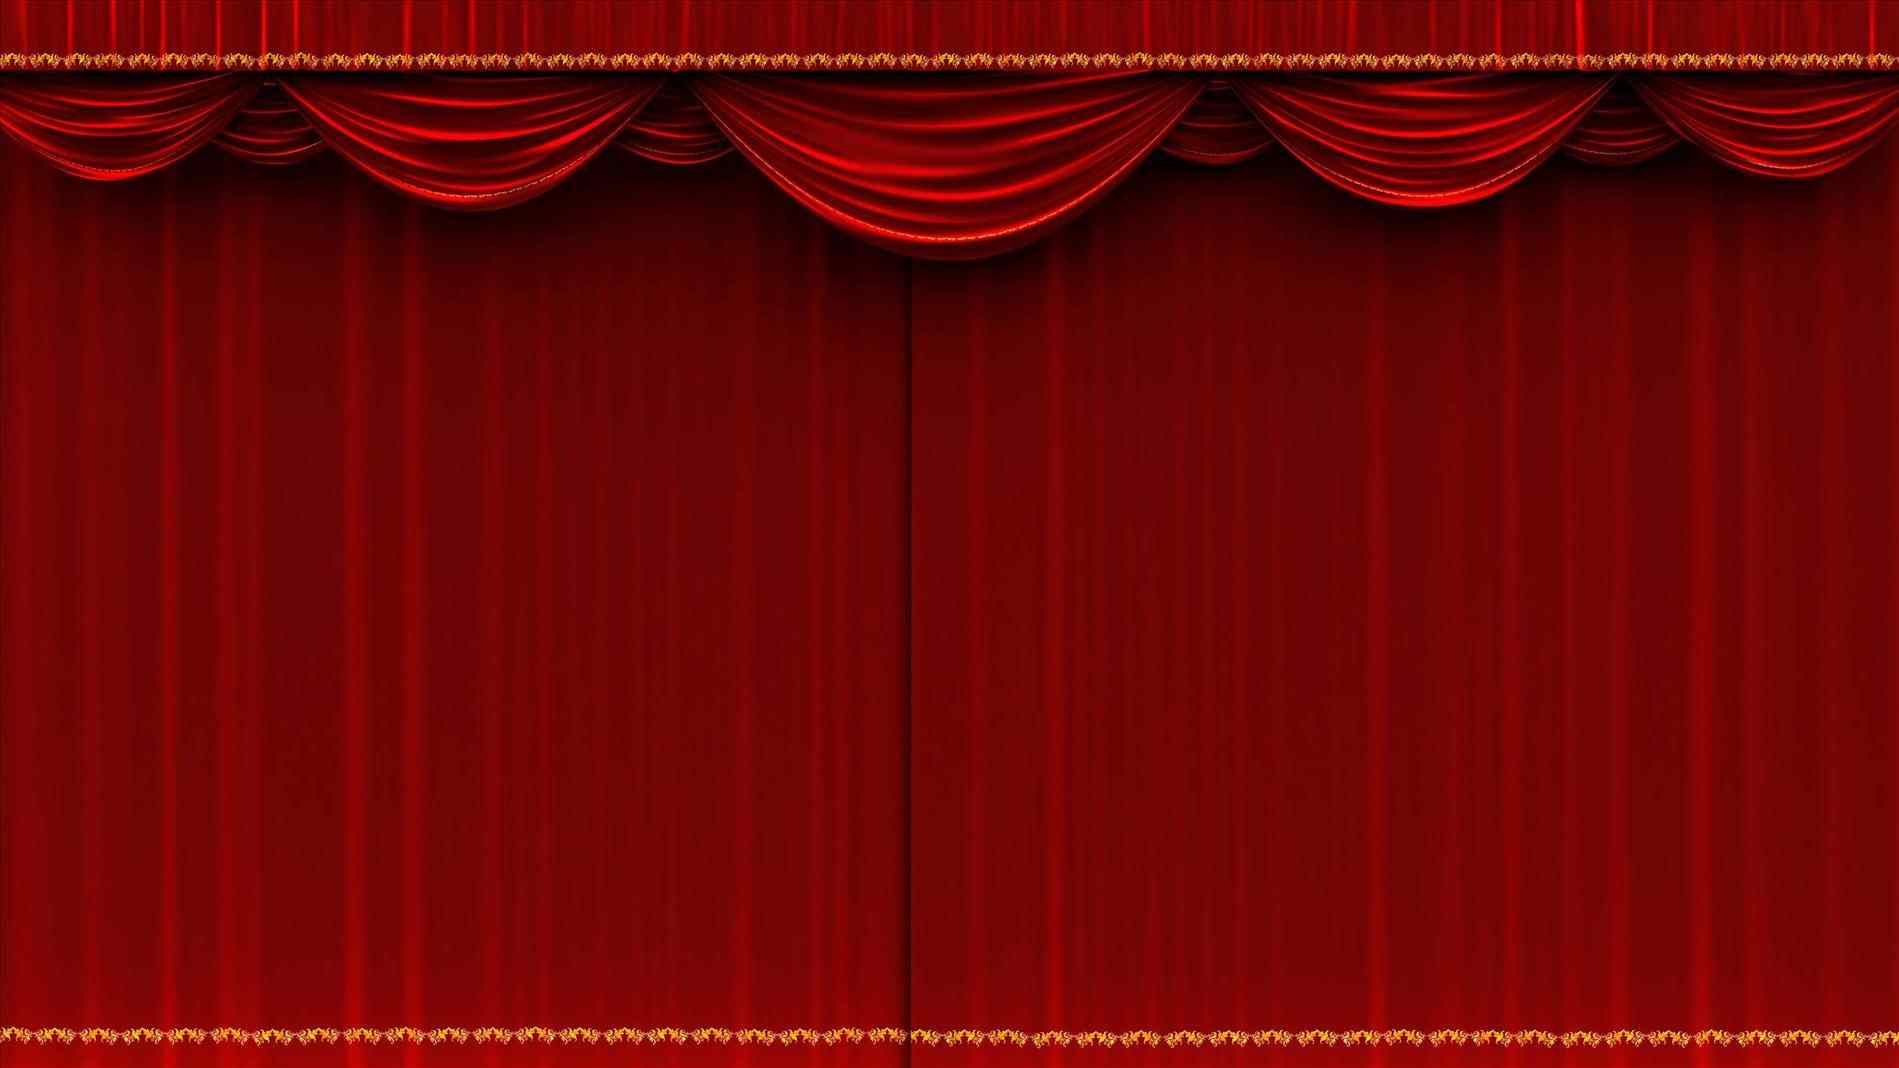 Free photo: Velvet Stage Curtain - Act, Presentation, Hollywood - Free Download - Jooinn